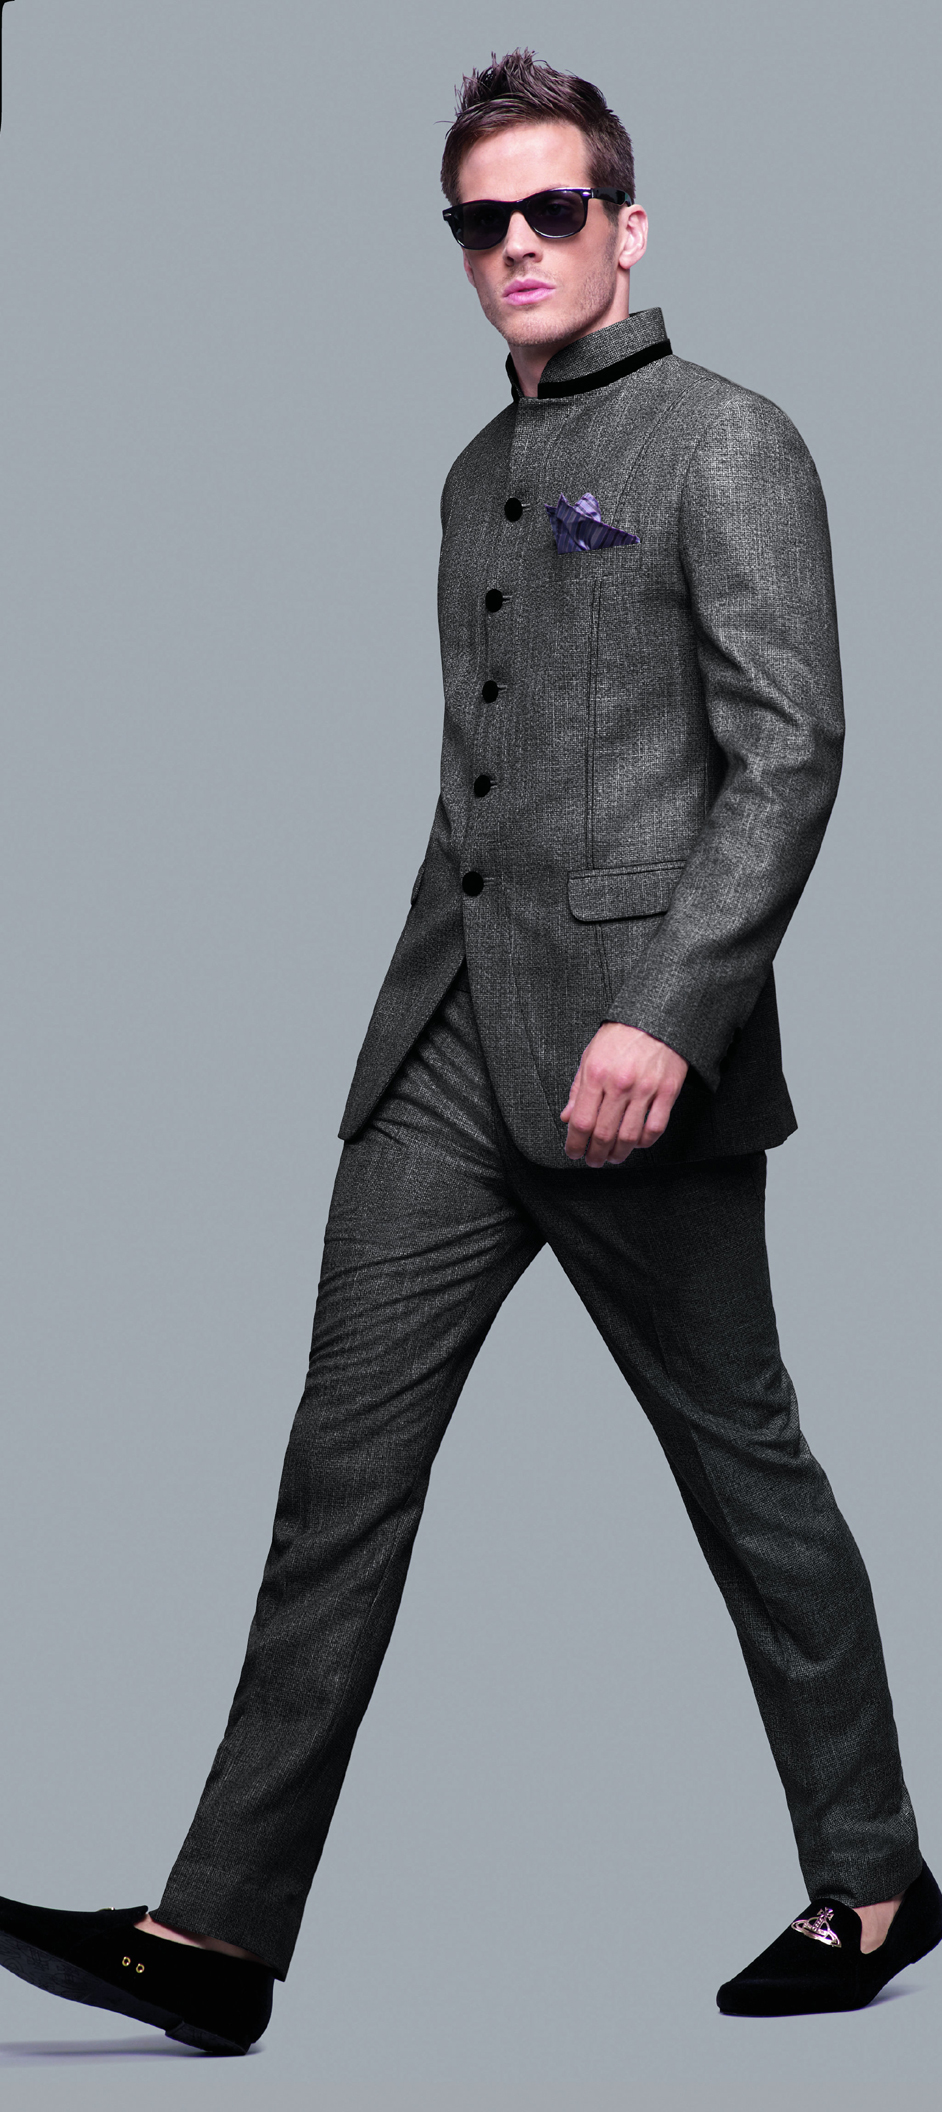 502813: Black and Grey color family stitched Jodhpuri Suit .